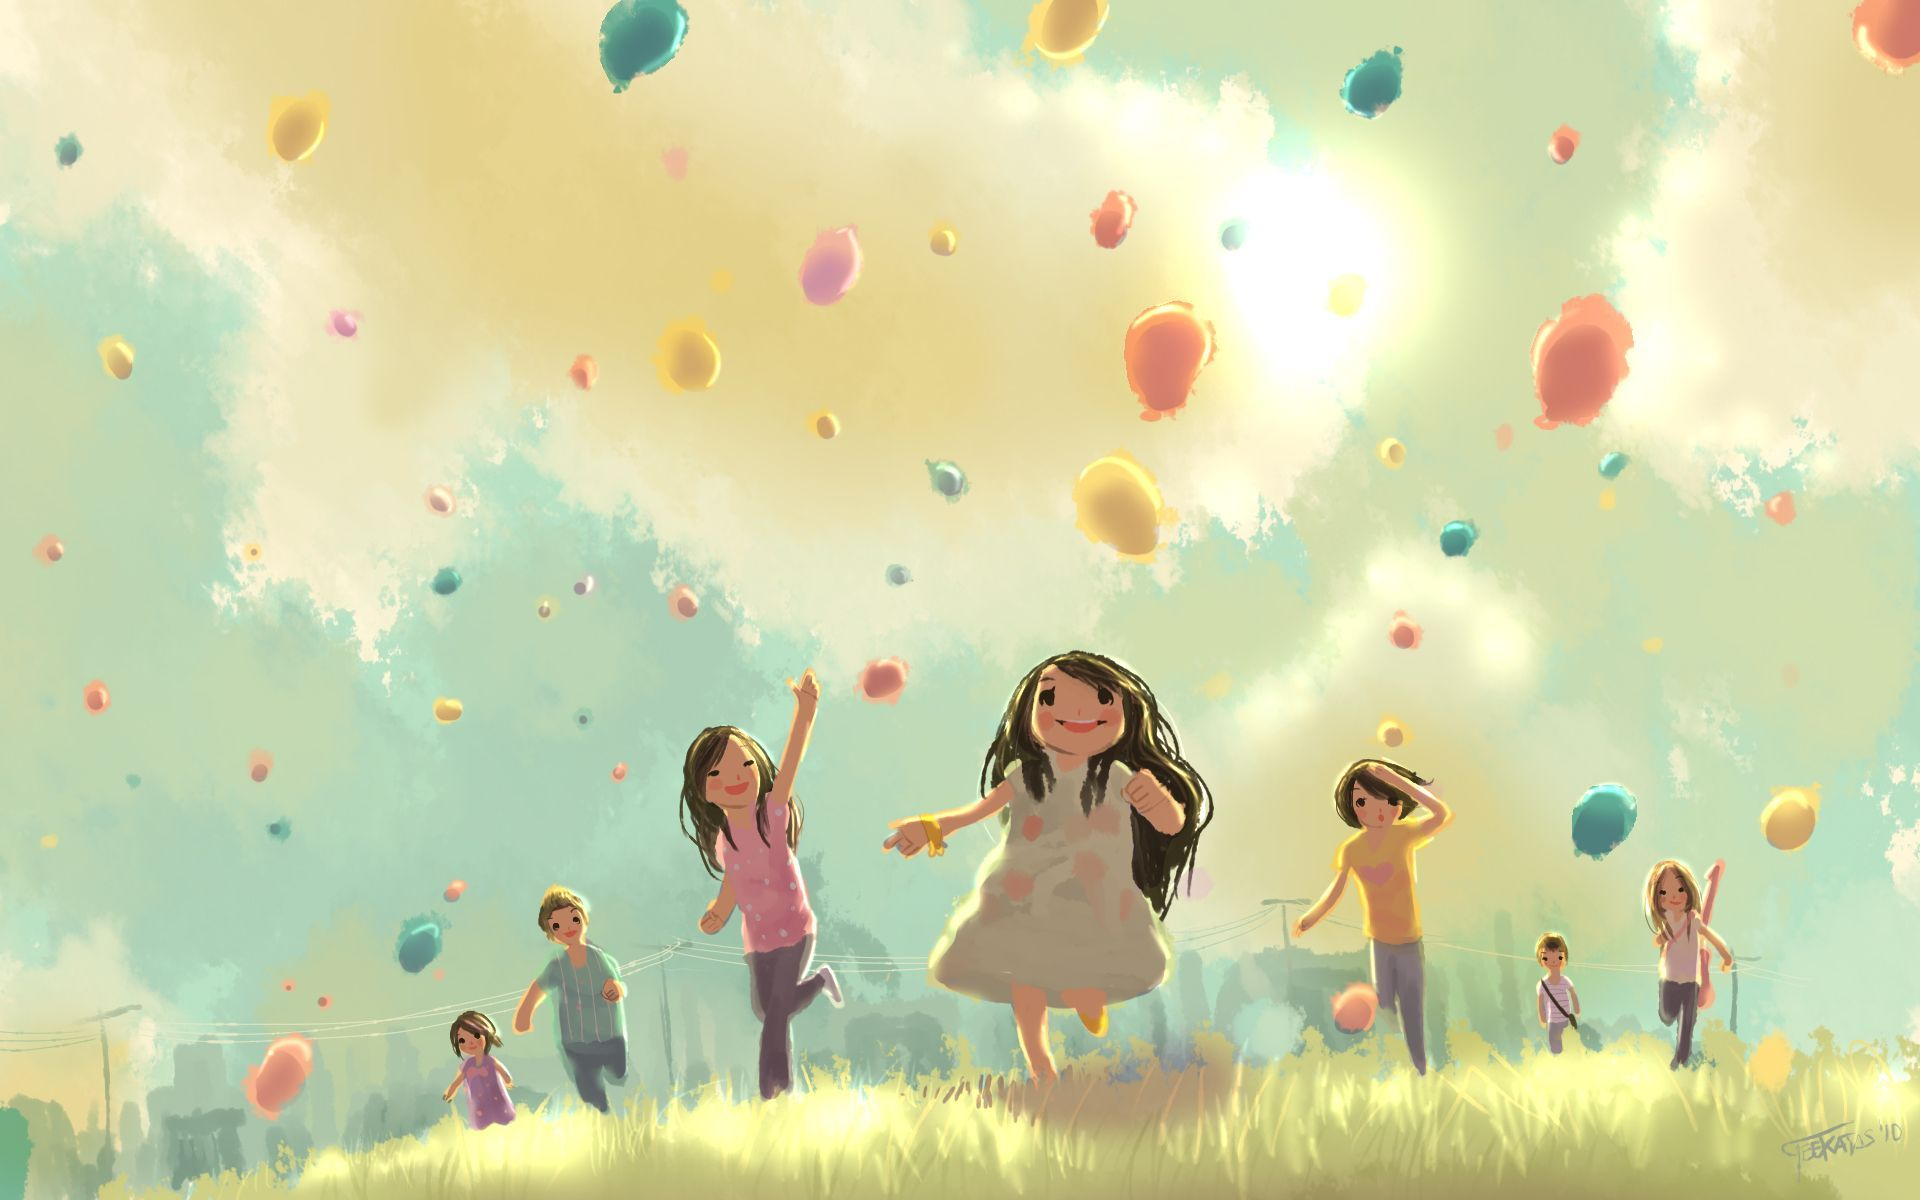 Happy Kids Wallpapers - Top Free Happy Kids Backgrounds - WallpaperAccess